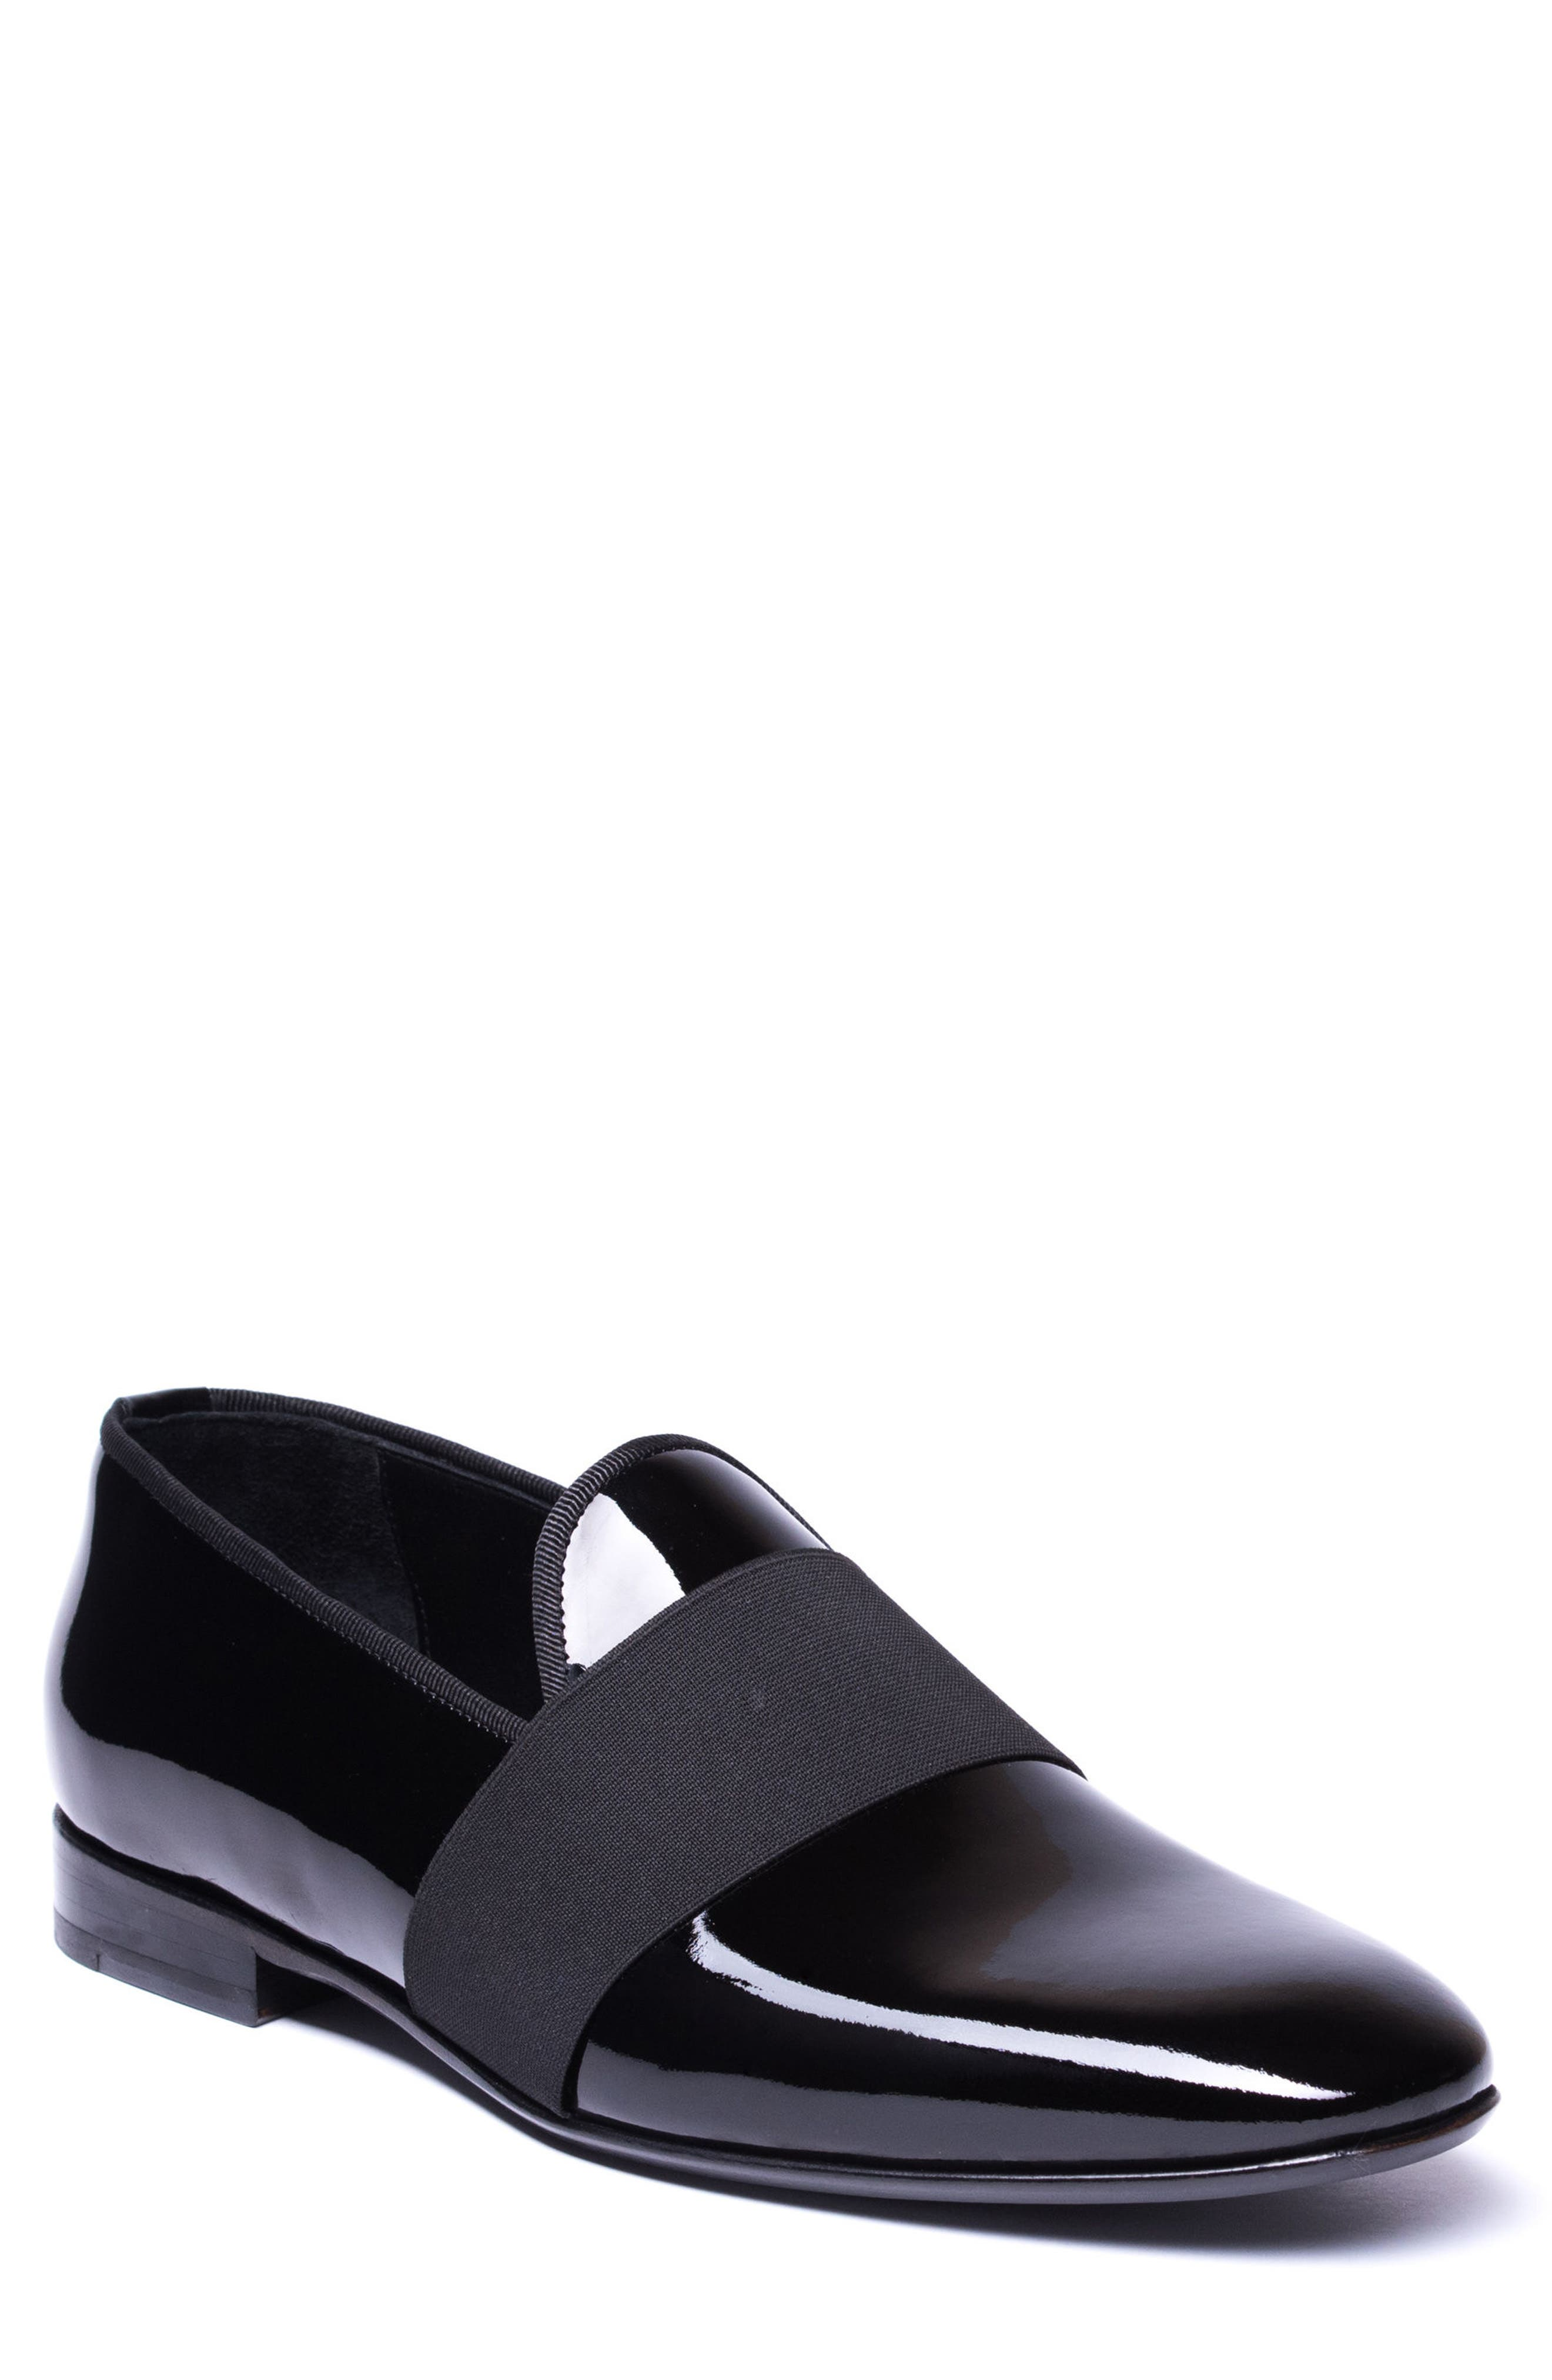 Alessandro Banded Venetian Loafer,                         Main,                         color, BLACK LEATHER